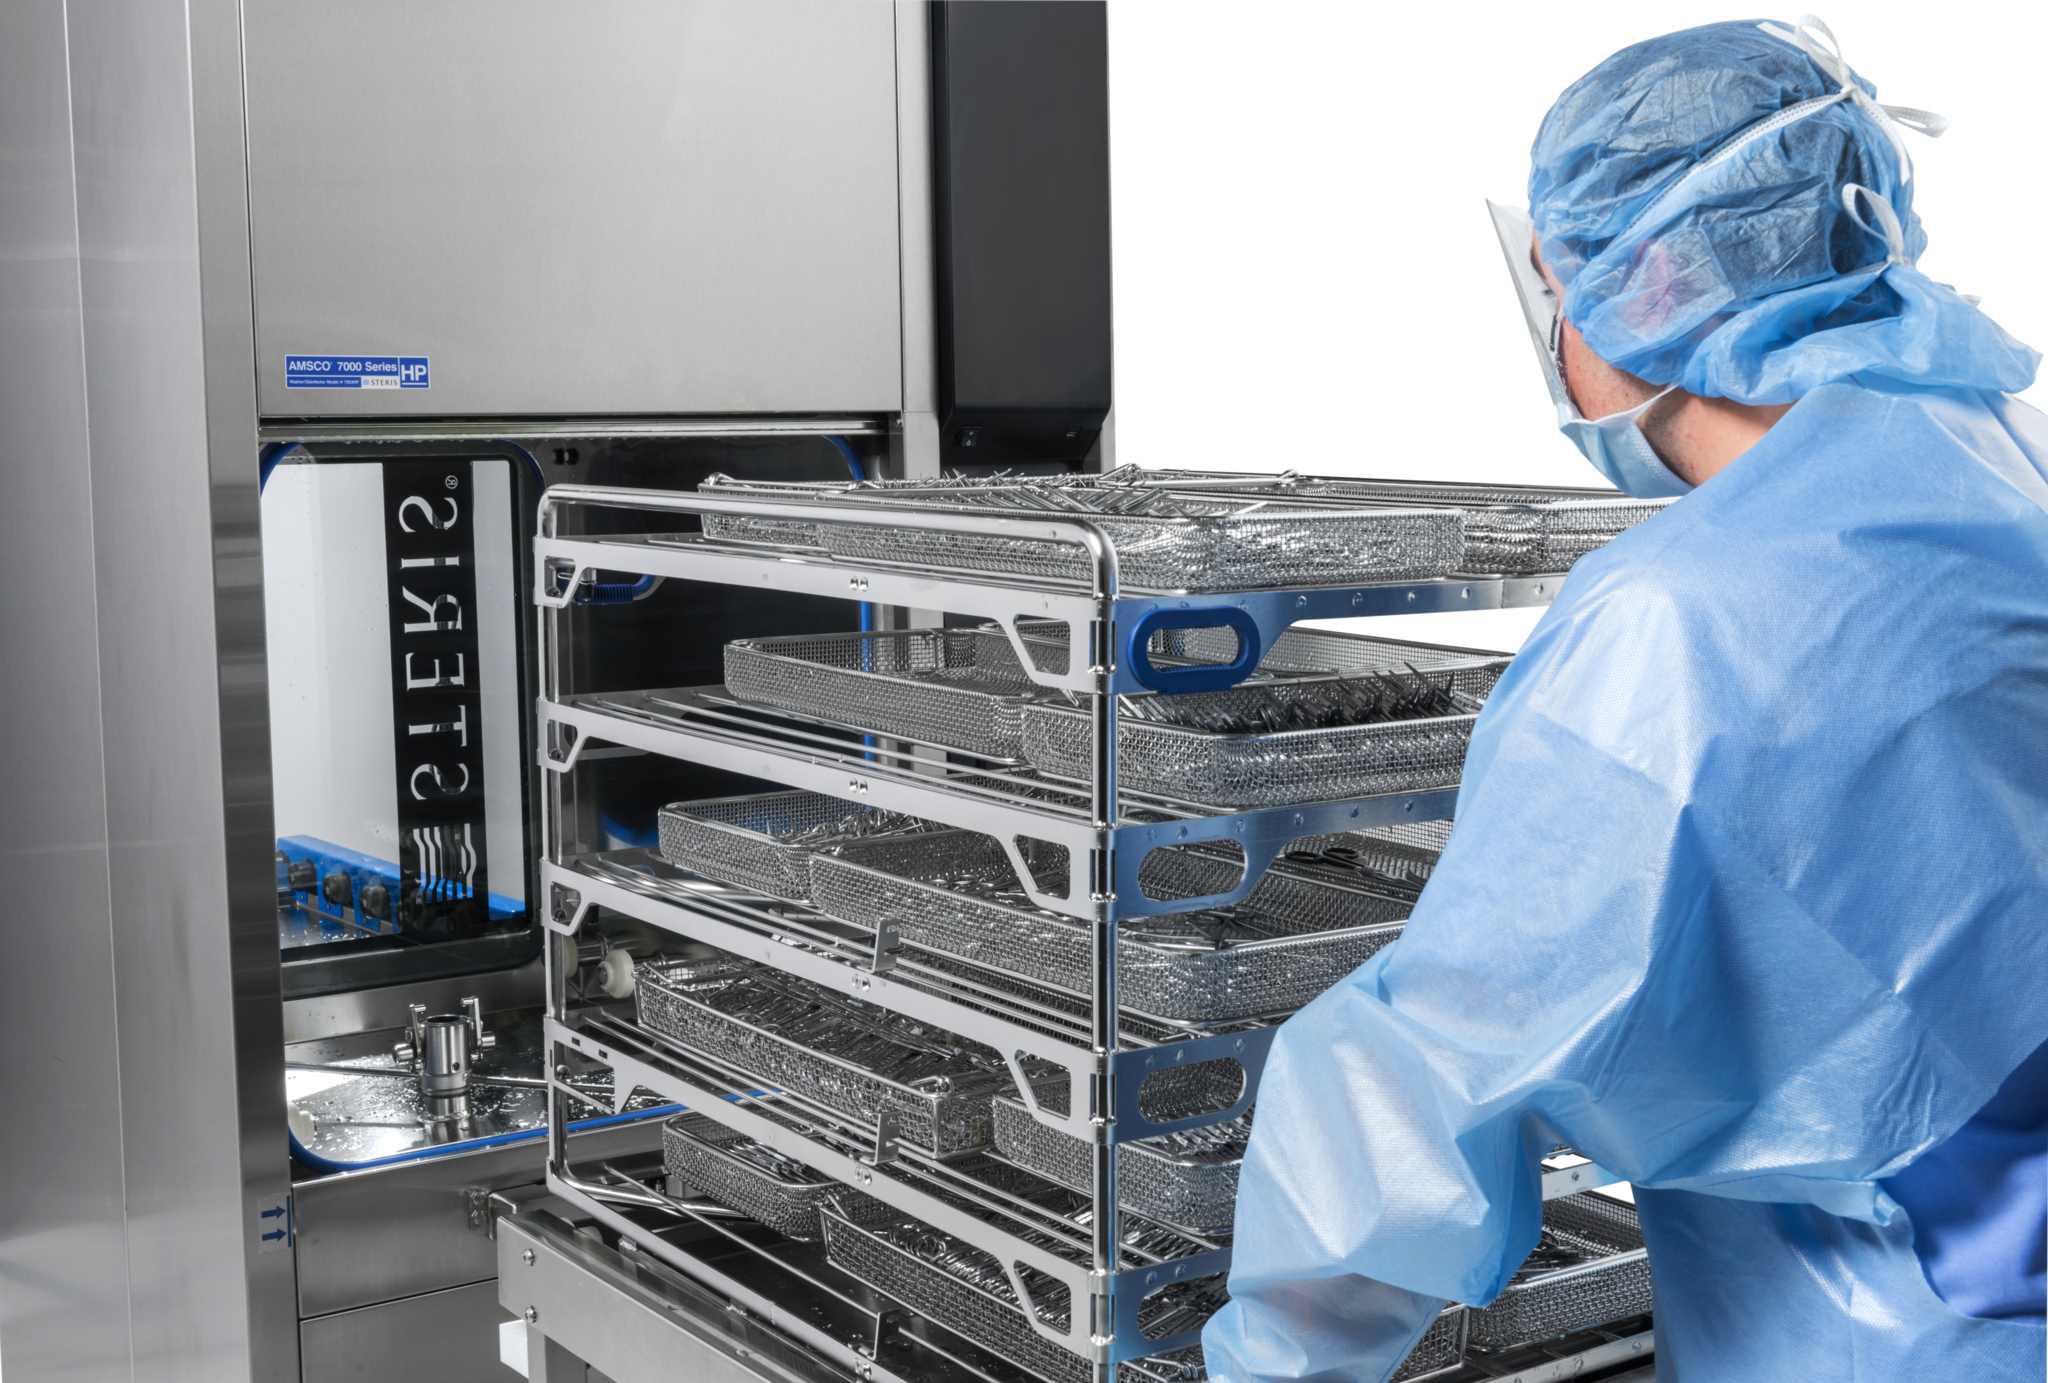 The Principles of Cleaning and Decontamination of Medical Devices - eLearning